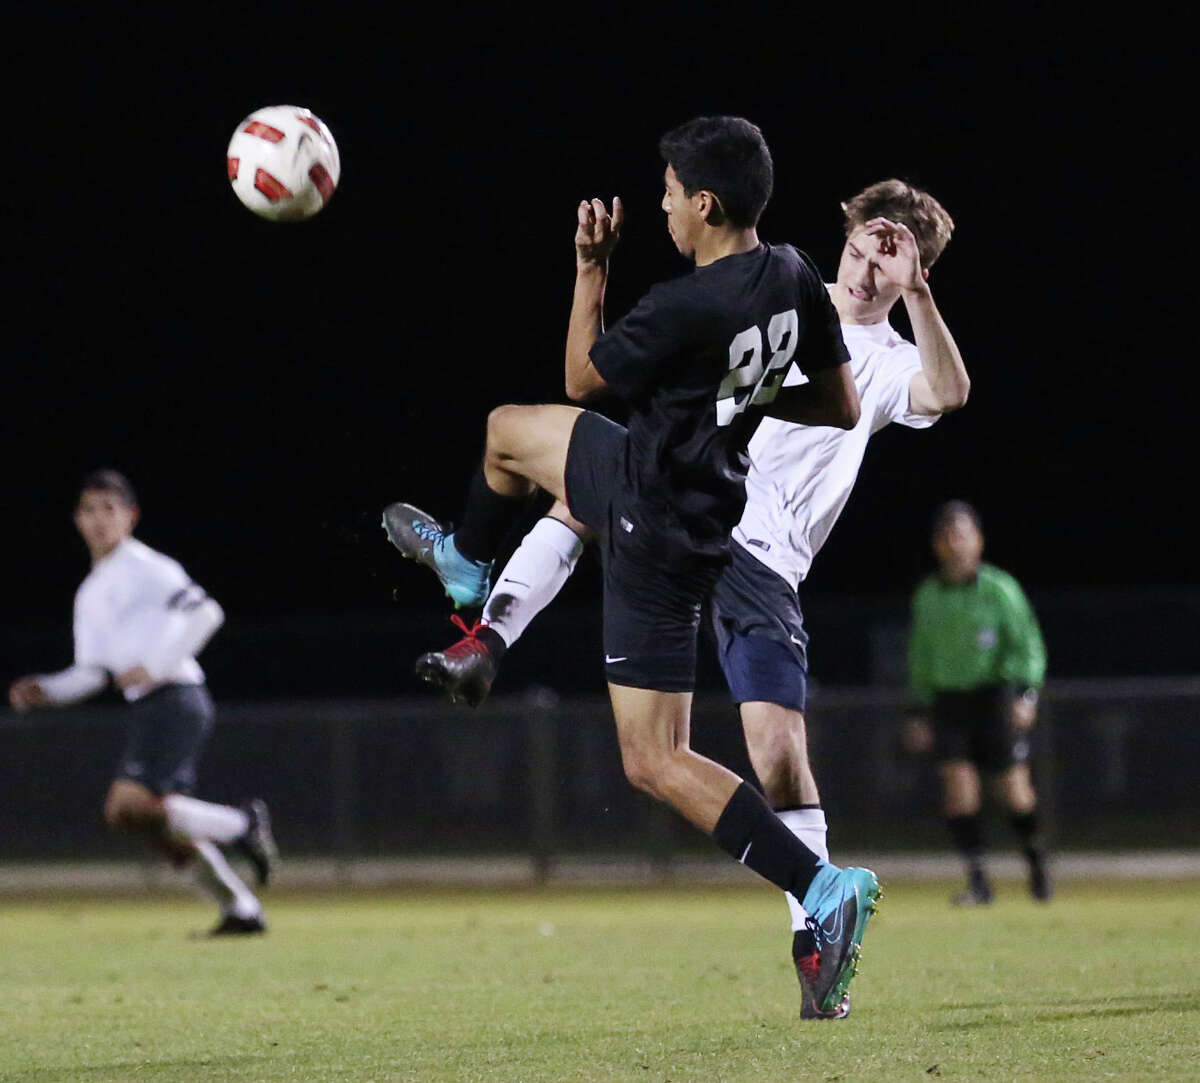 Spring Woods defender Cesar Escalante (22) goes for the ball against Tomball Memorial midfielder Ethan Wade (16) during the first half of a soccer game between Spring Woods and Tomball Memorial Friday, Jan. 29, 2016, in Tomball.